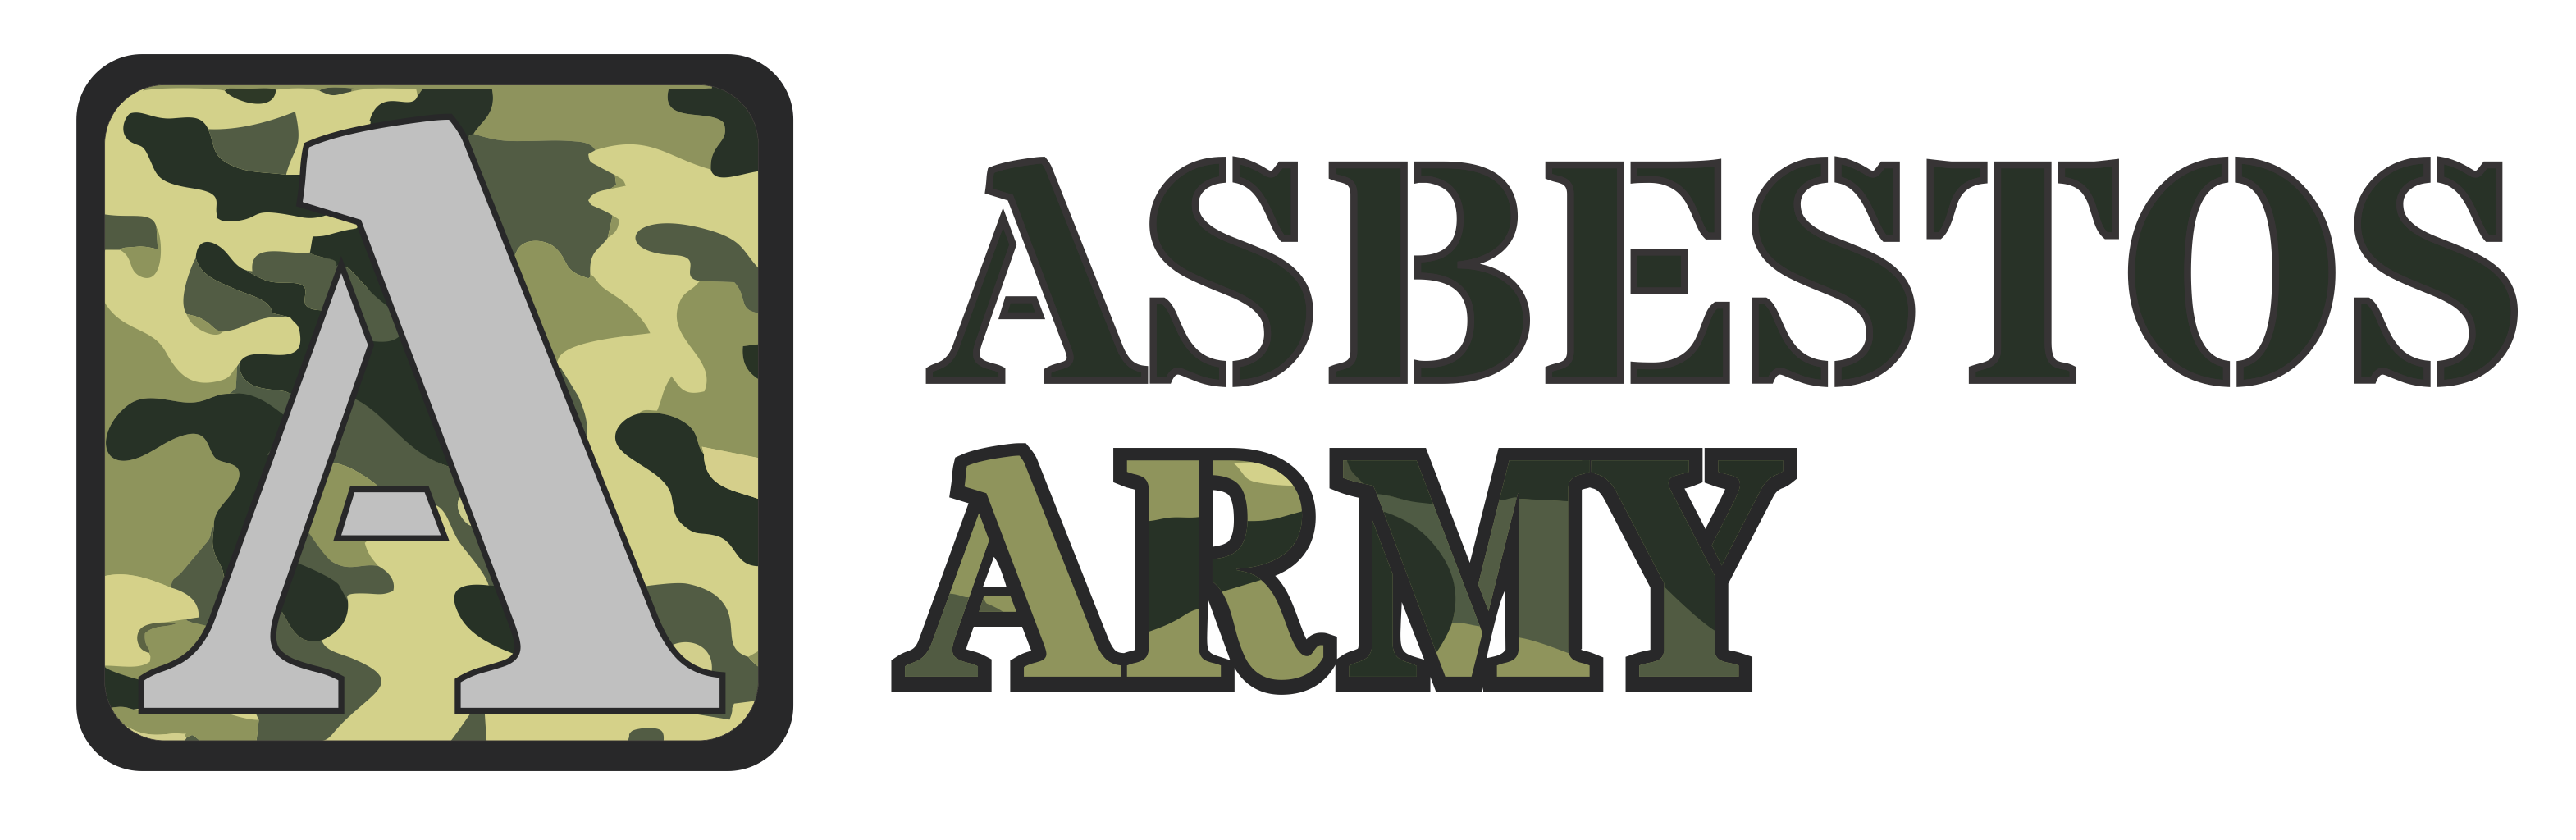 ASBESTOS ARMY PTY LTD